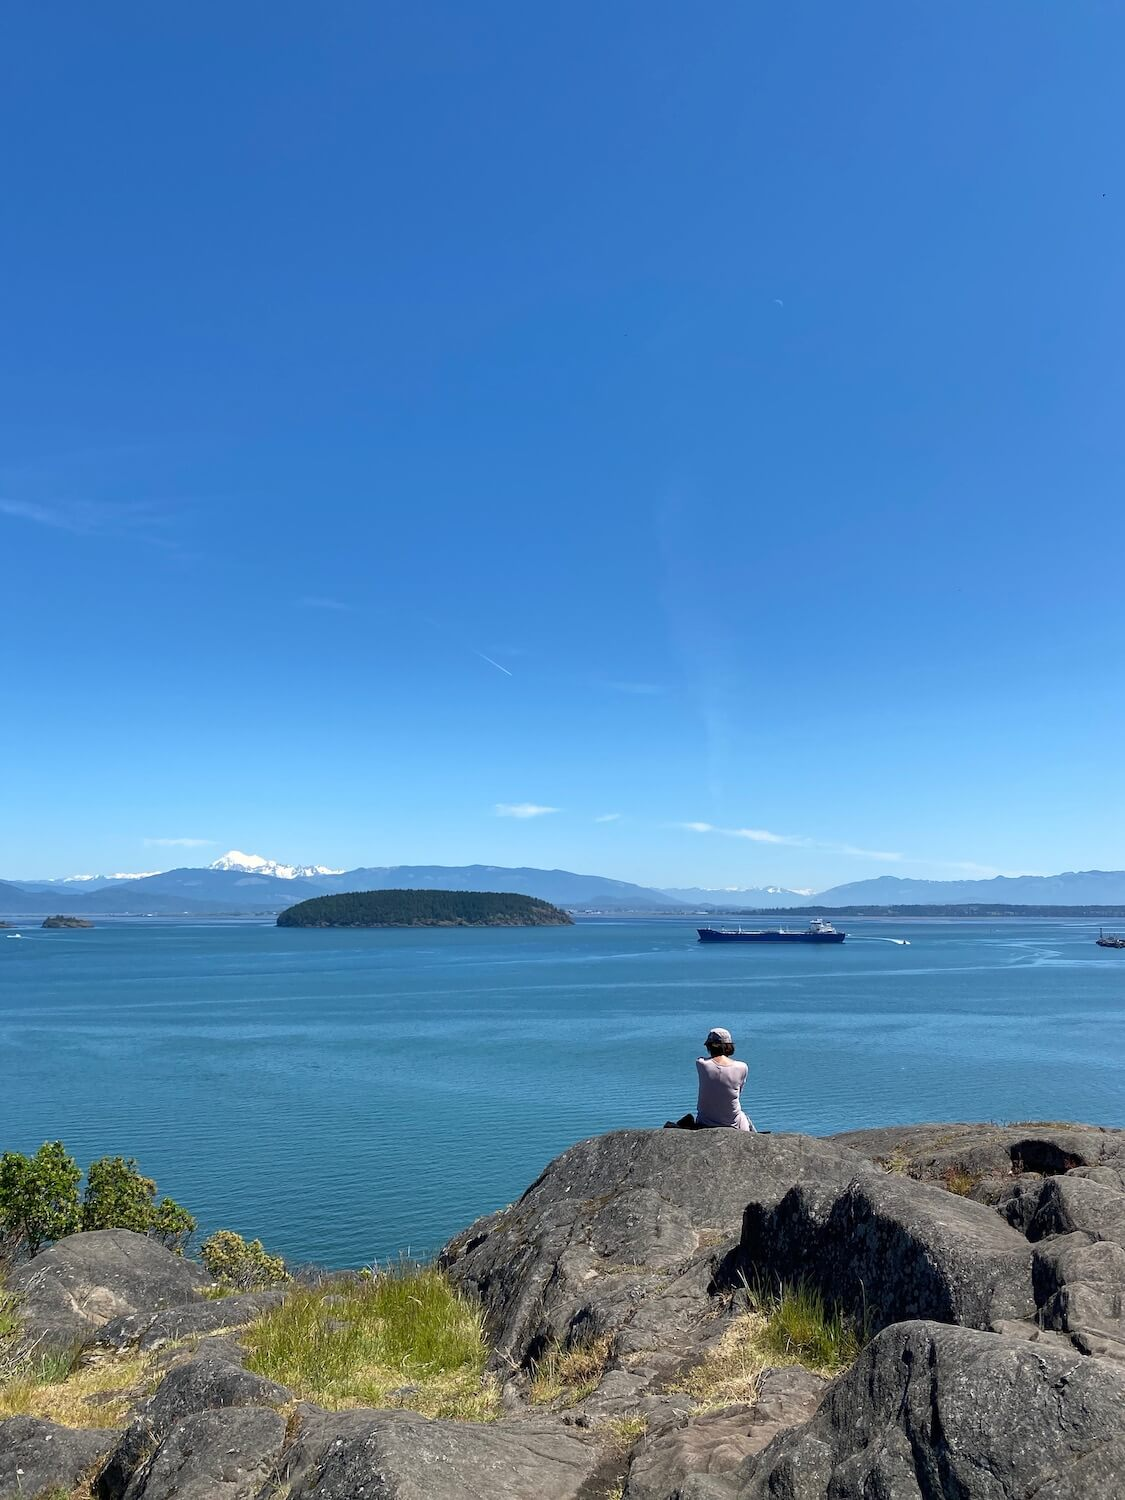 This shot shows a scene from the viewpoint of Cap Sante Park which is one of the great things to do in Anacortes, Washington. A woman sits on top of a giant boulder with other rocks around and some patches of bright green grass. She looks out towards snow capped Mount Baker and the vast water of the Puget Sound. There is a large merchant ship in the channel and a fir tree covered island. The sky is bright blue.  A day trip from Seattle to Deception Pass and Anacortes is guaranteed to provide stunning vistas of nature.